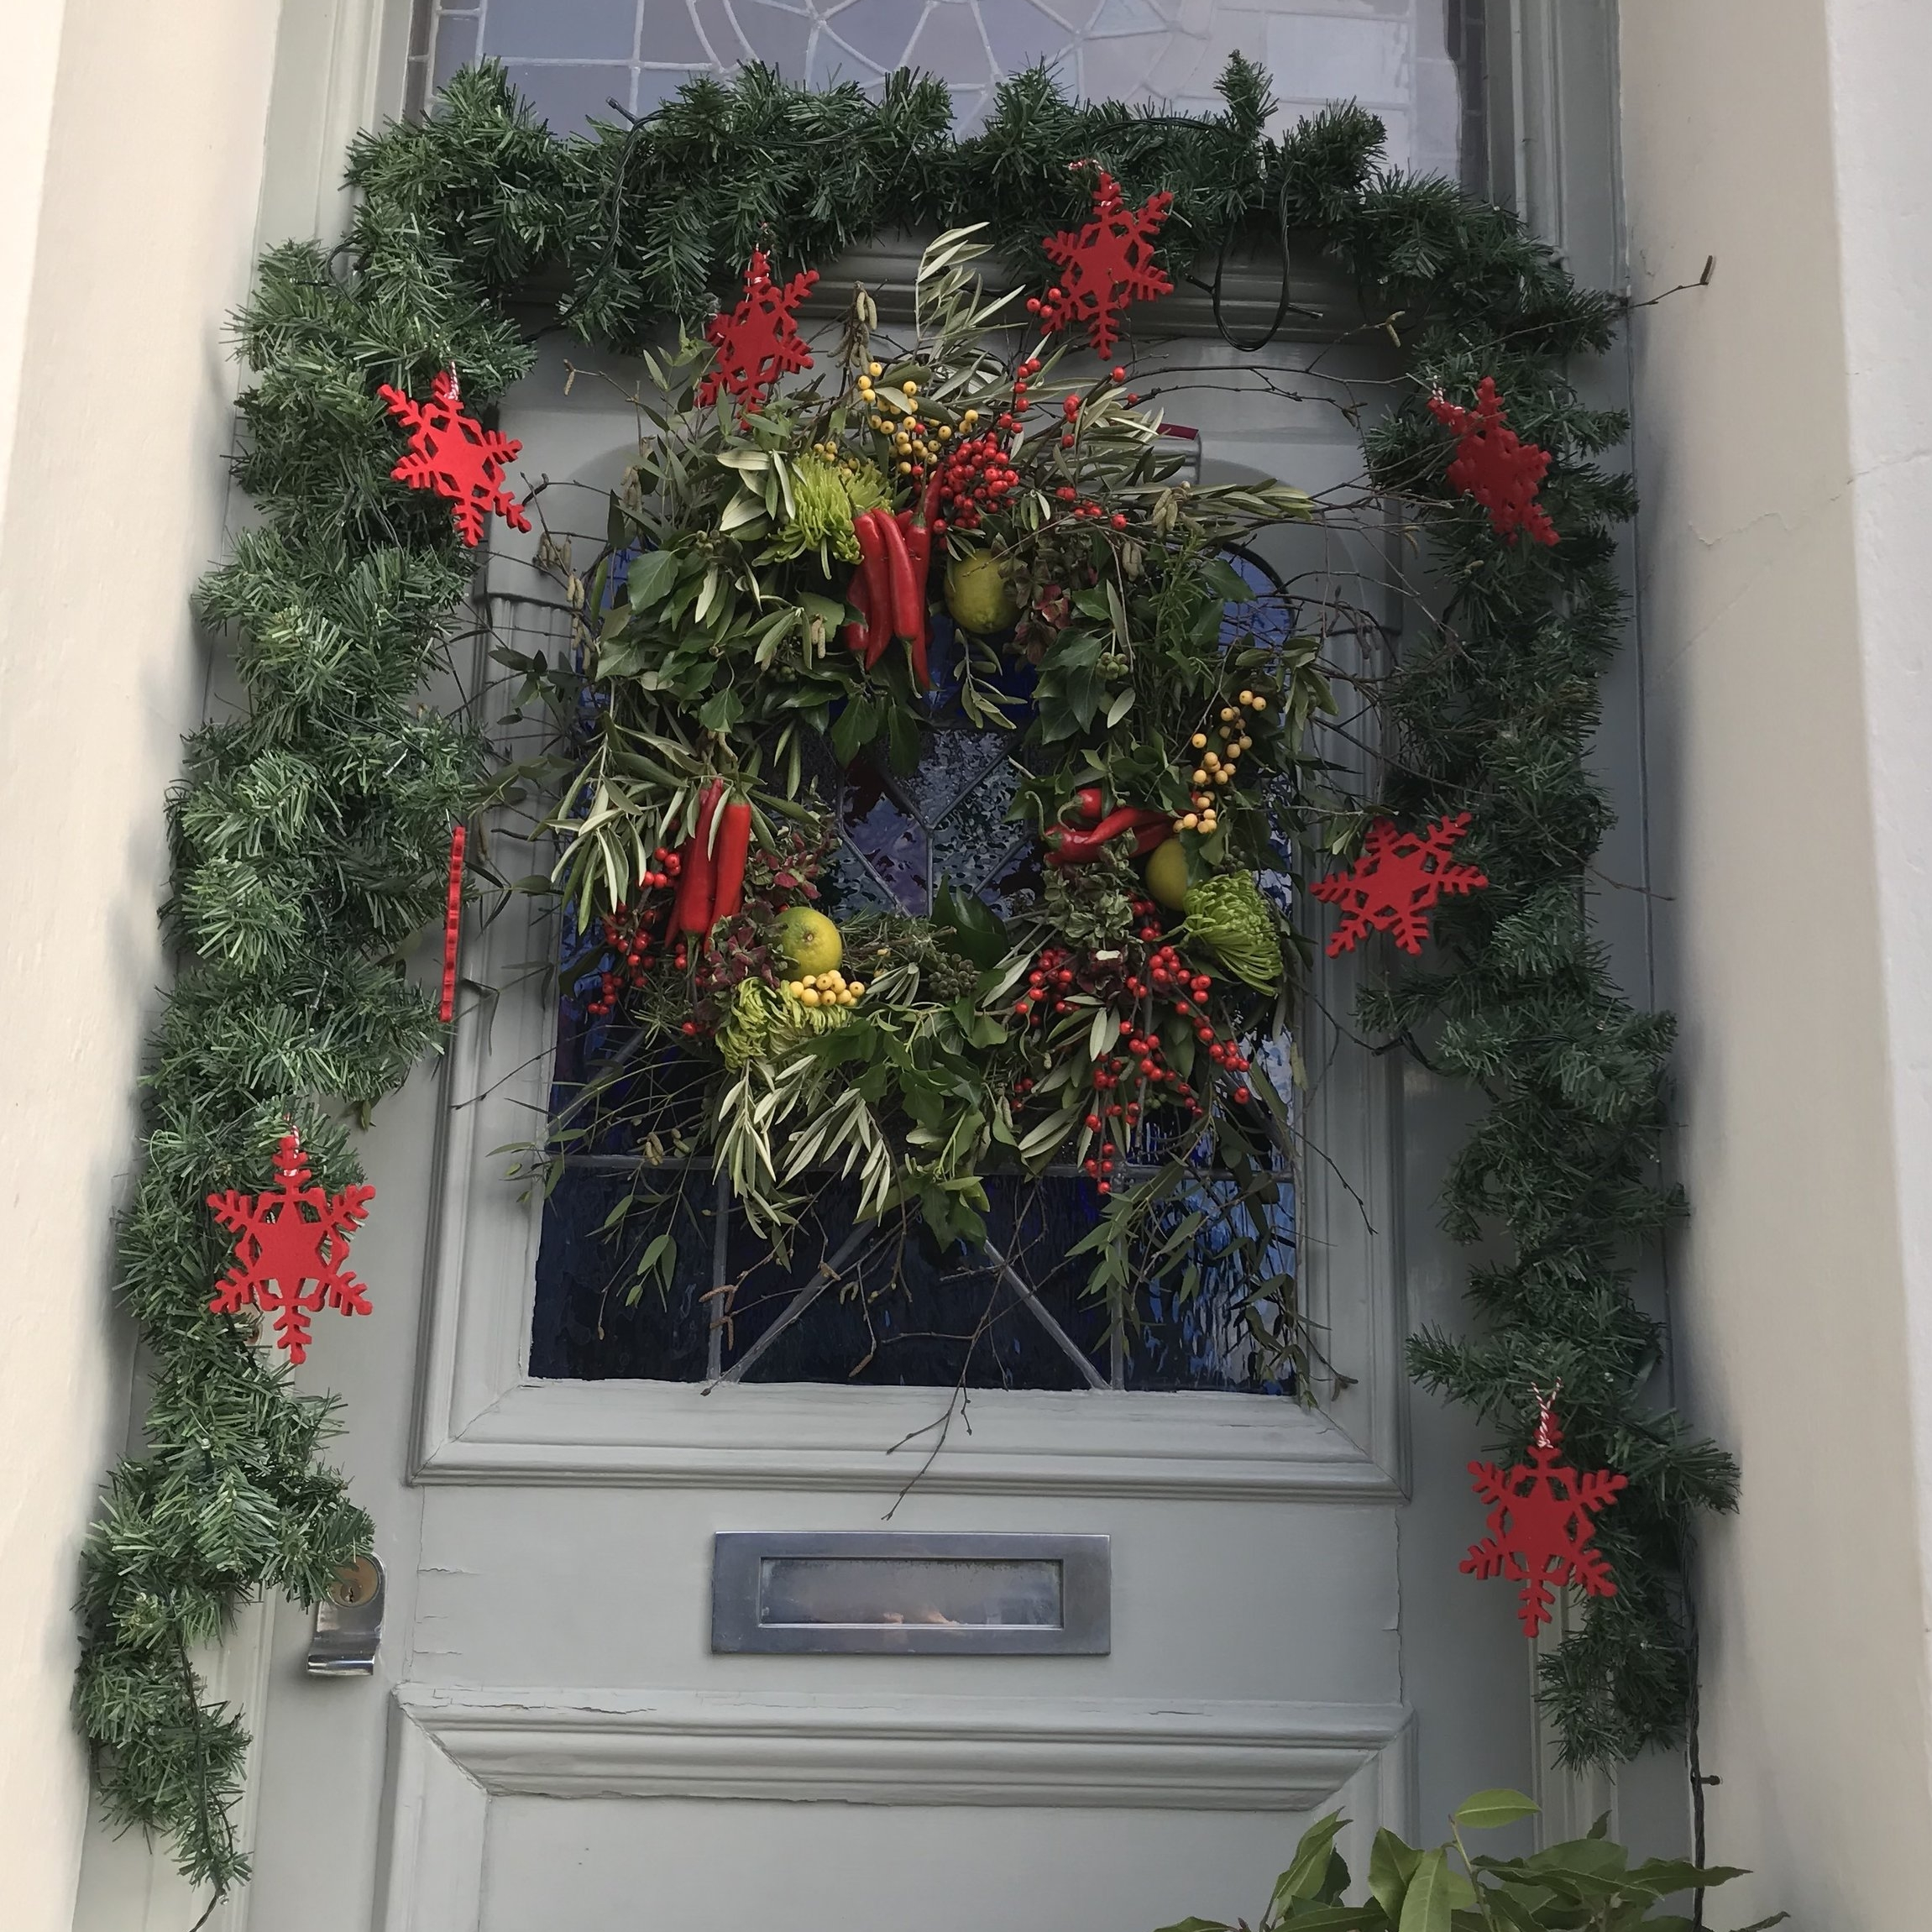 Mandy's front door decorations include foliage from her garden.